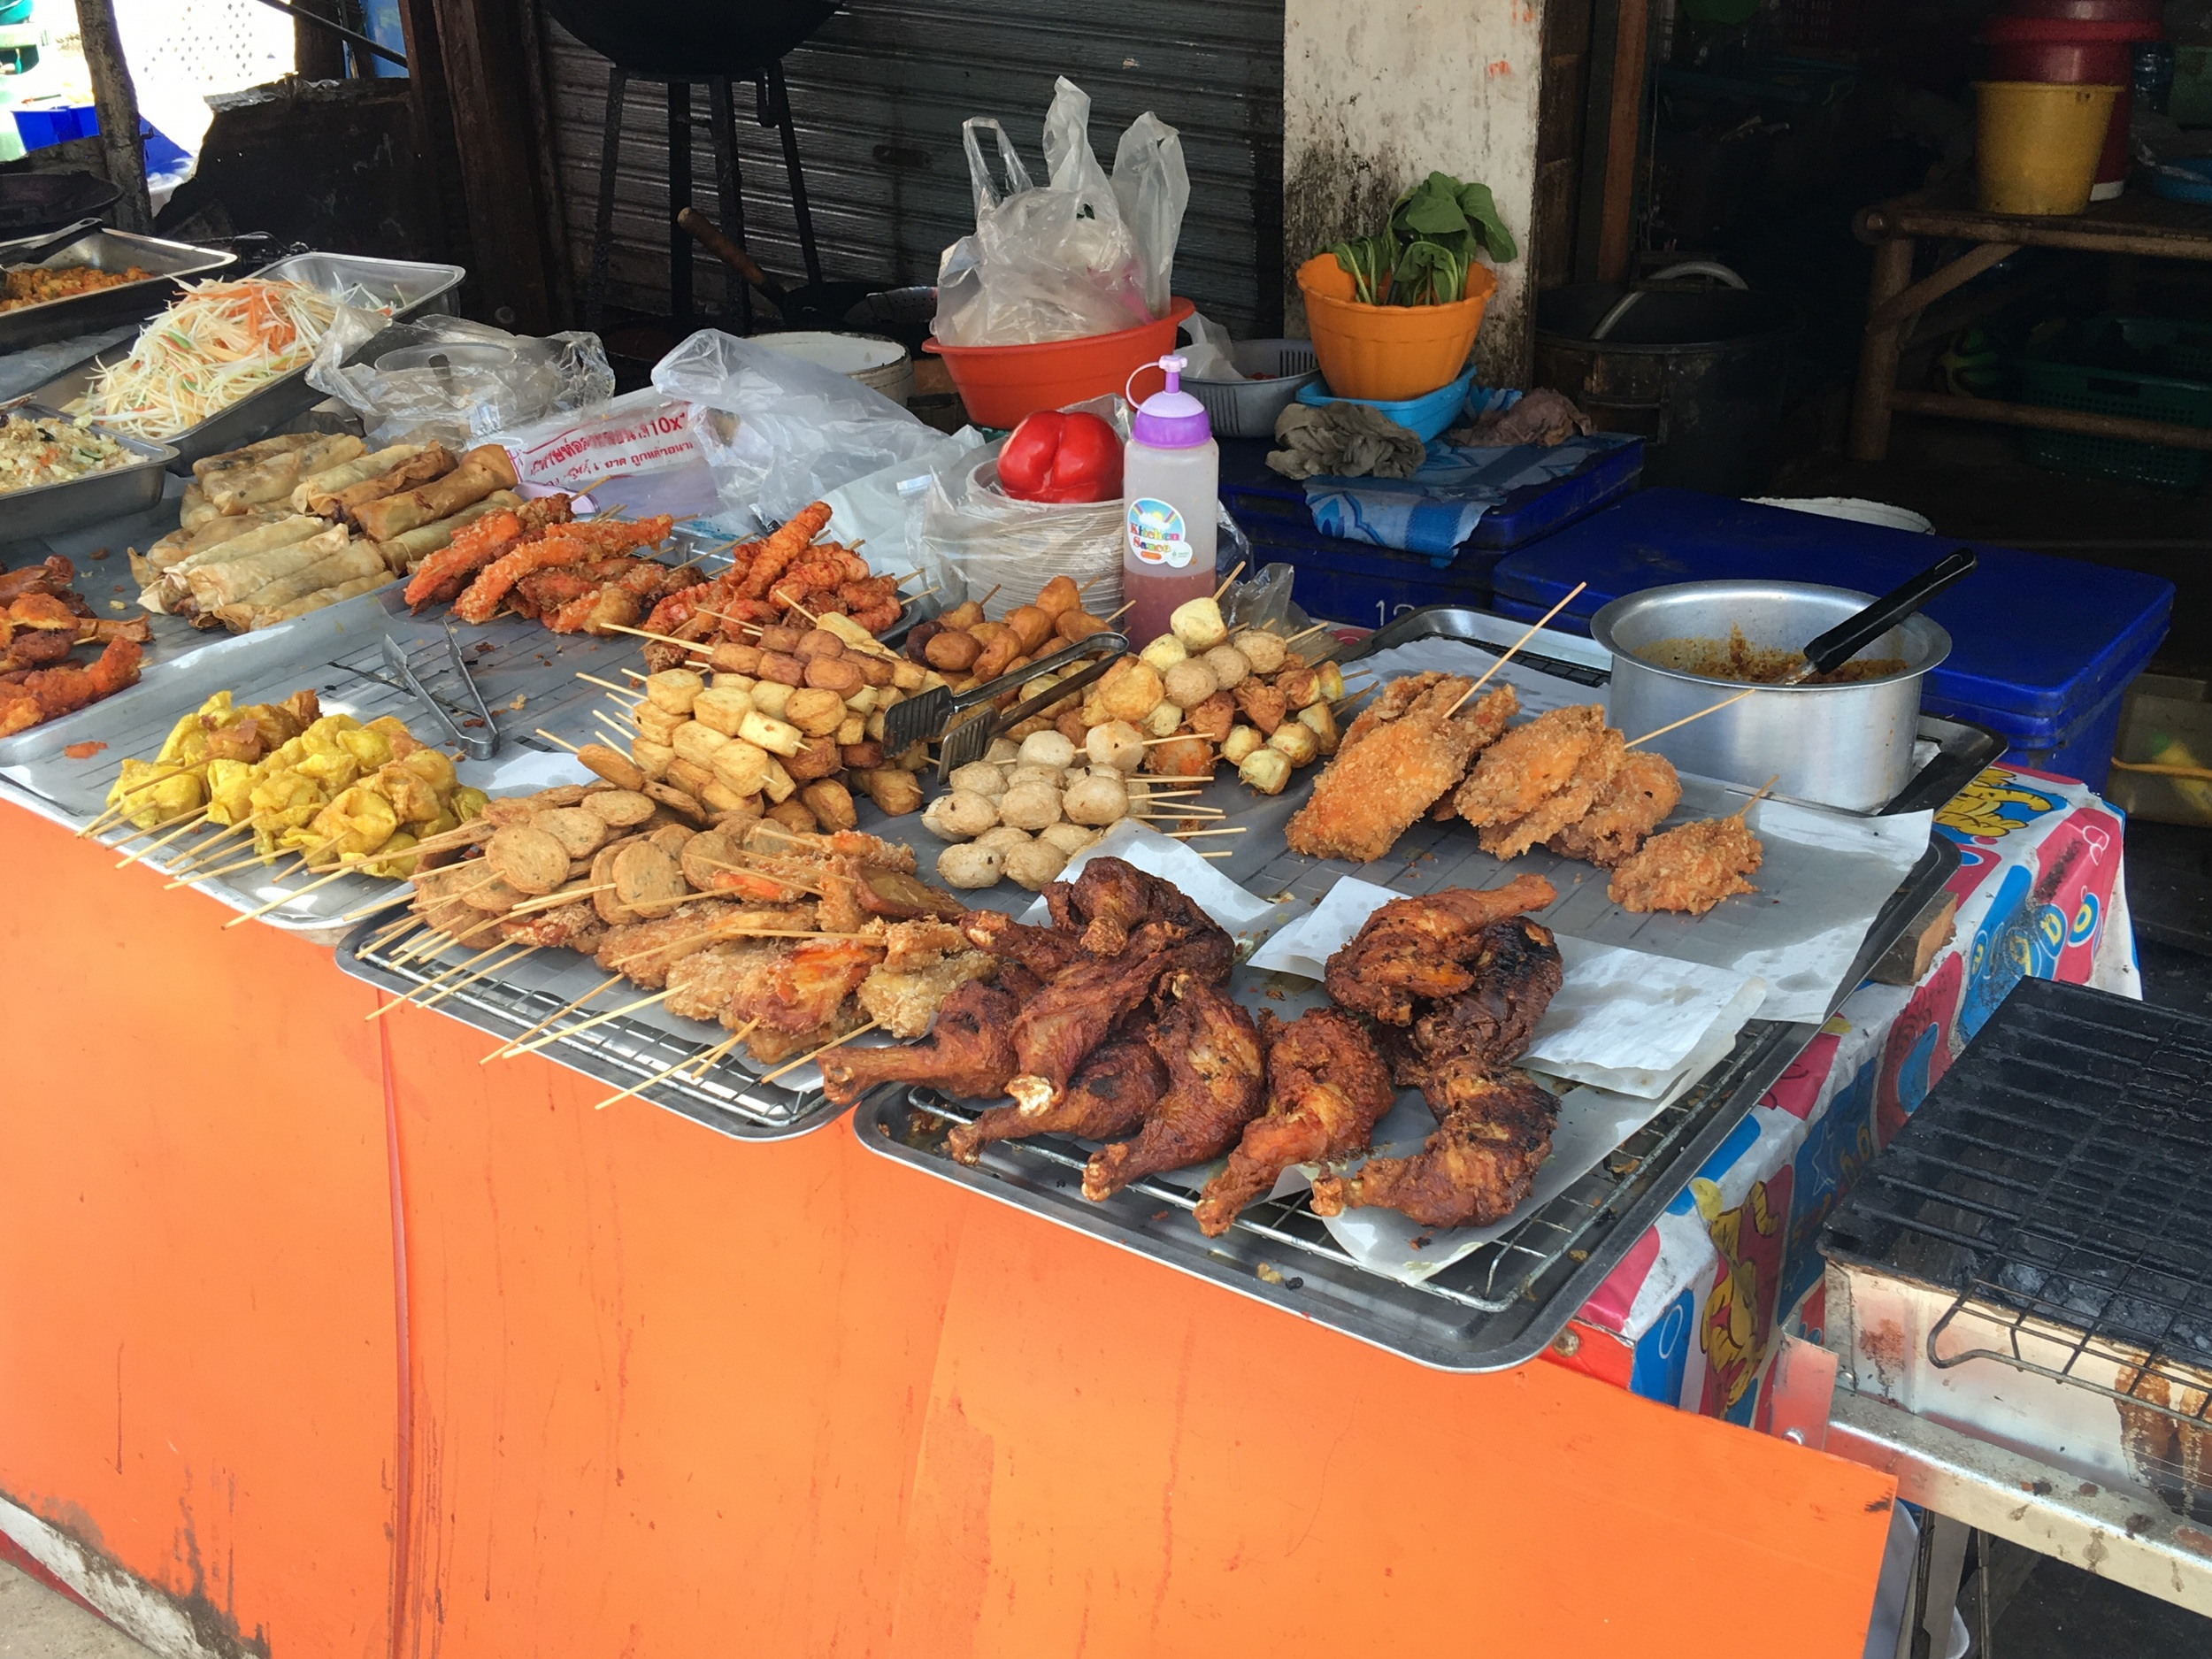 The Street Food Vendors in the city center of Saladan